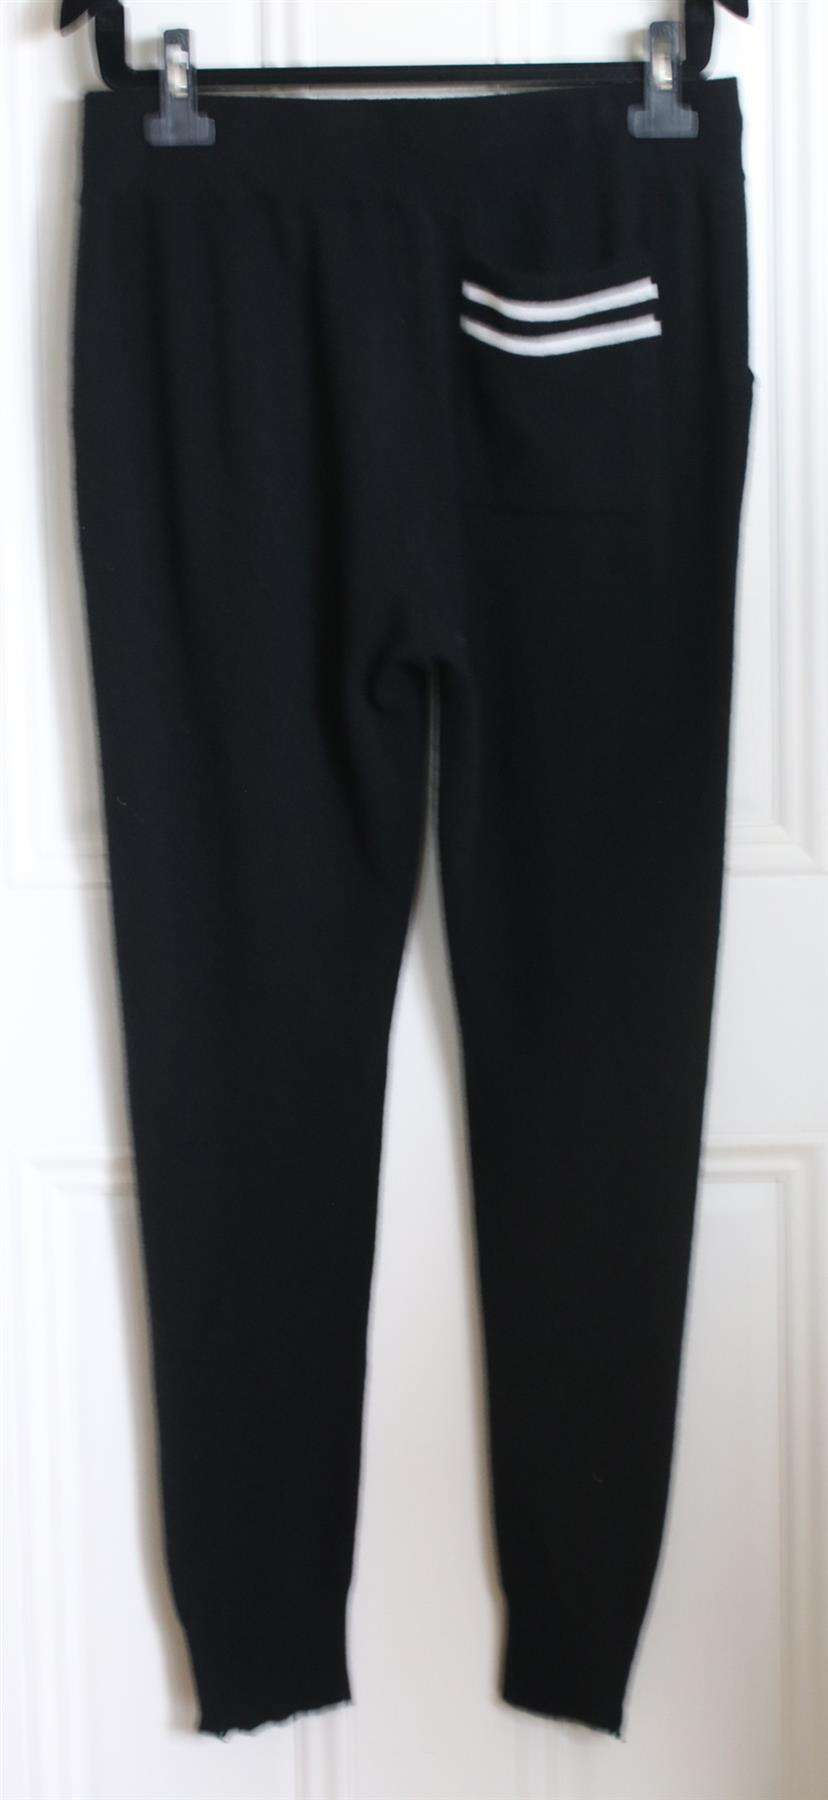 JAMES PERSE CASHMERE KNIT TRACK PANTS UK 12